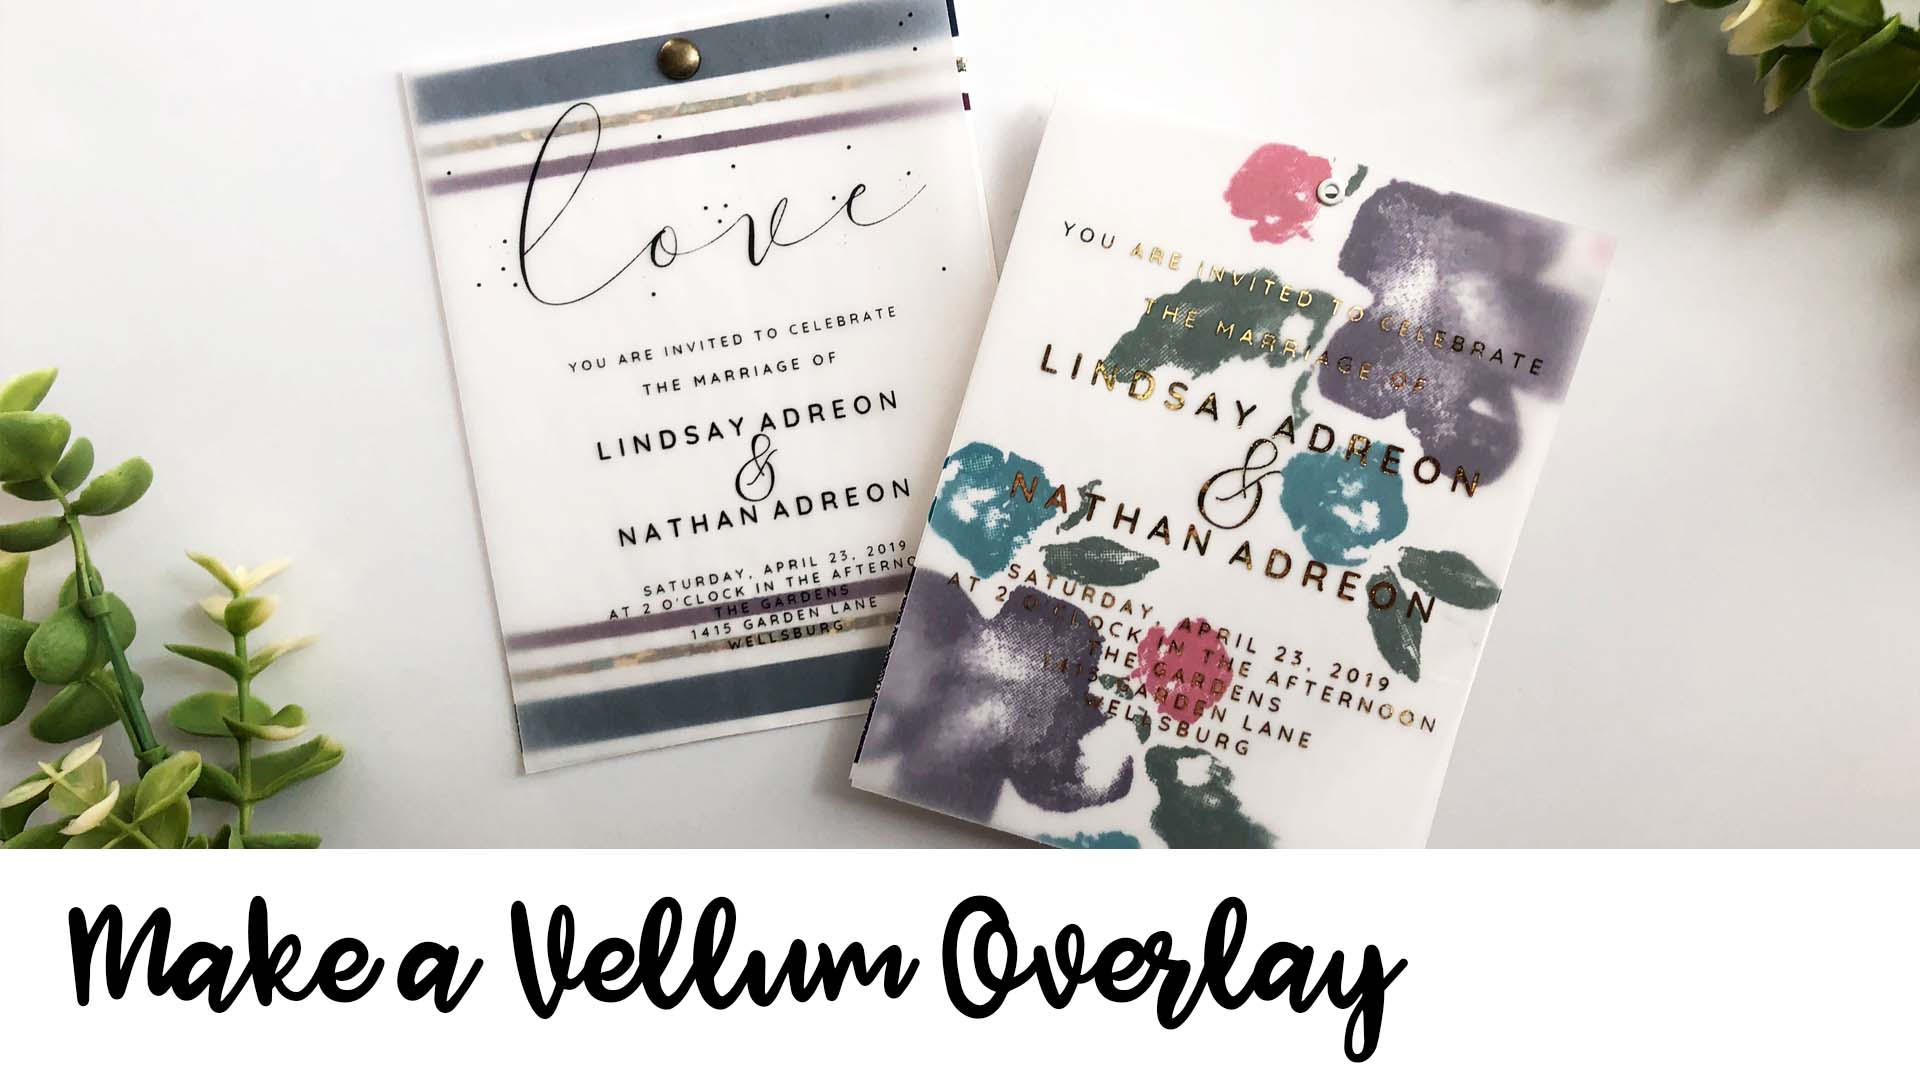 Handmade wedding invitaitons featuring a vellum overlay and several designs.